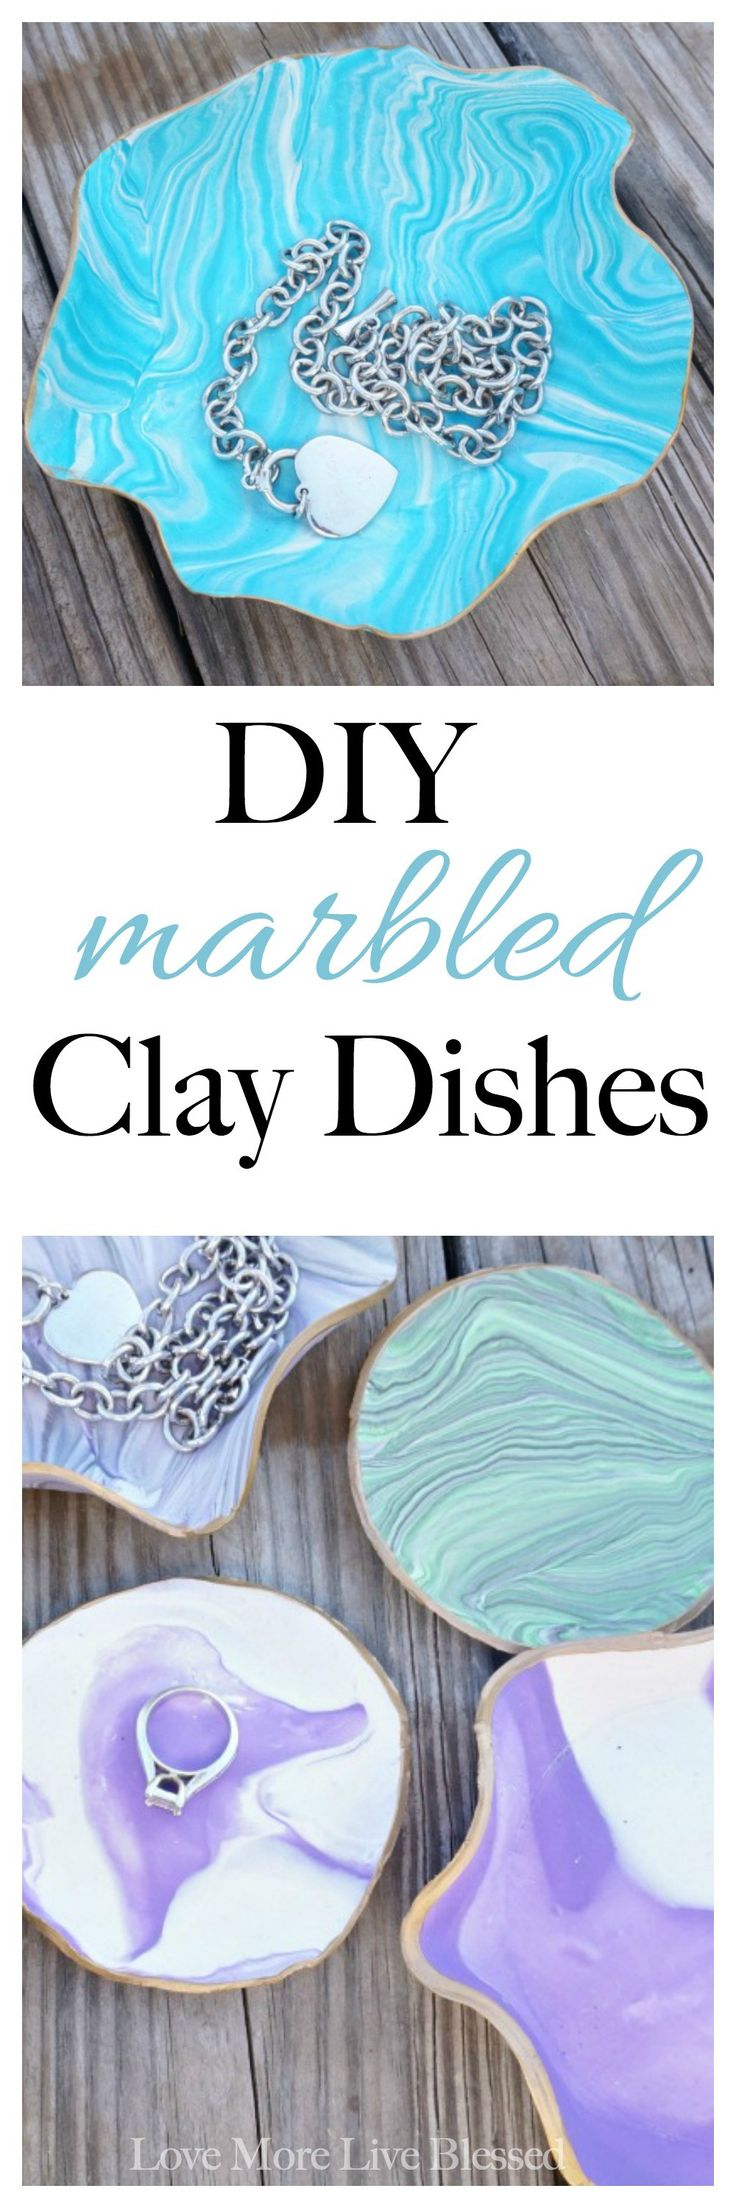 Thinking about DIY gift ideas for the holidays this year? This super easy DIY present is cheap and you can make it in less than one hour. The DIY marbled clay dishes turn out so cute you'll want to make several for yourself too. I know I did! | Christmas DIY gifts | Friend gifts | DIY clay dishes